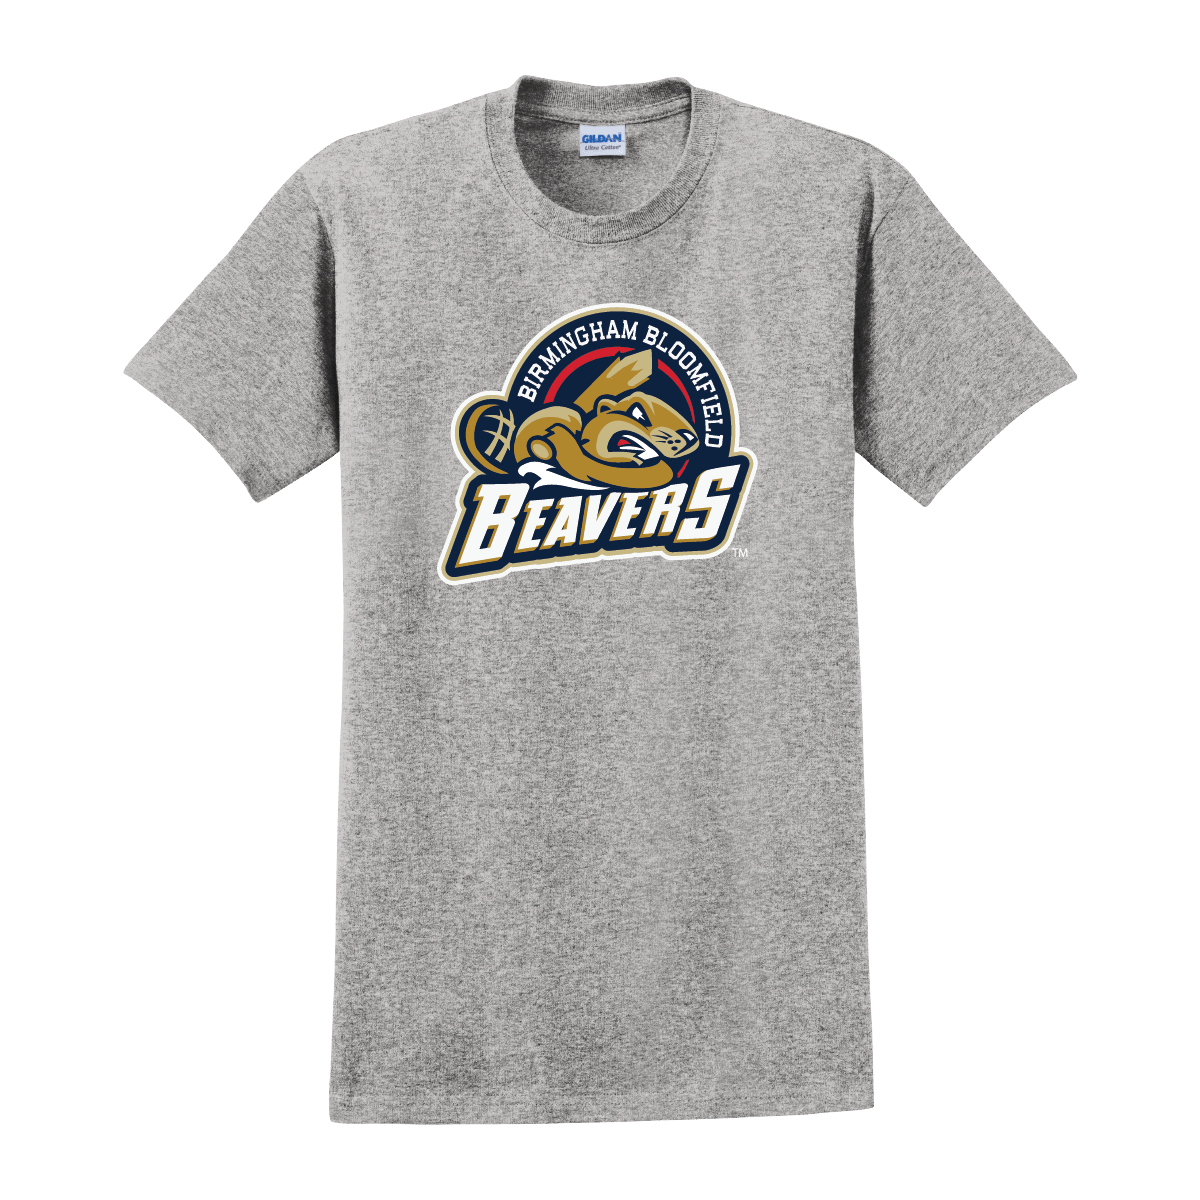 Men's Beavers Short Sleeve Crew Neck Tee